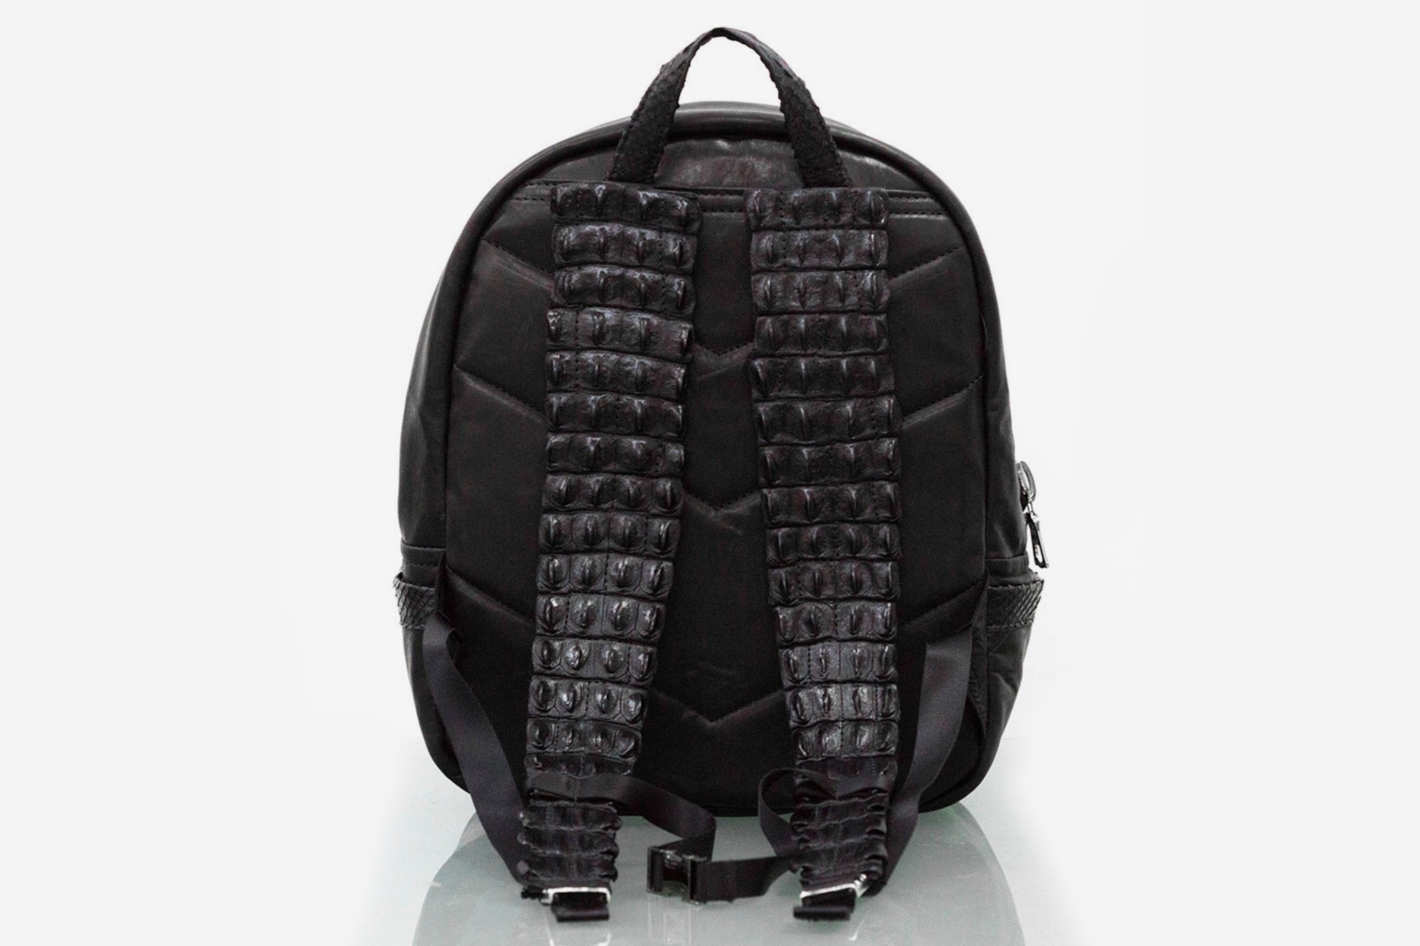 SR 1990 Bespoke Backpack